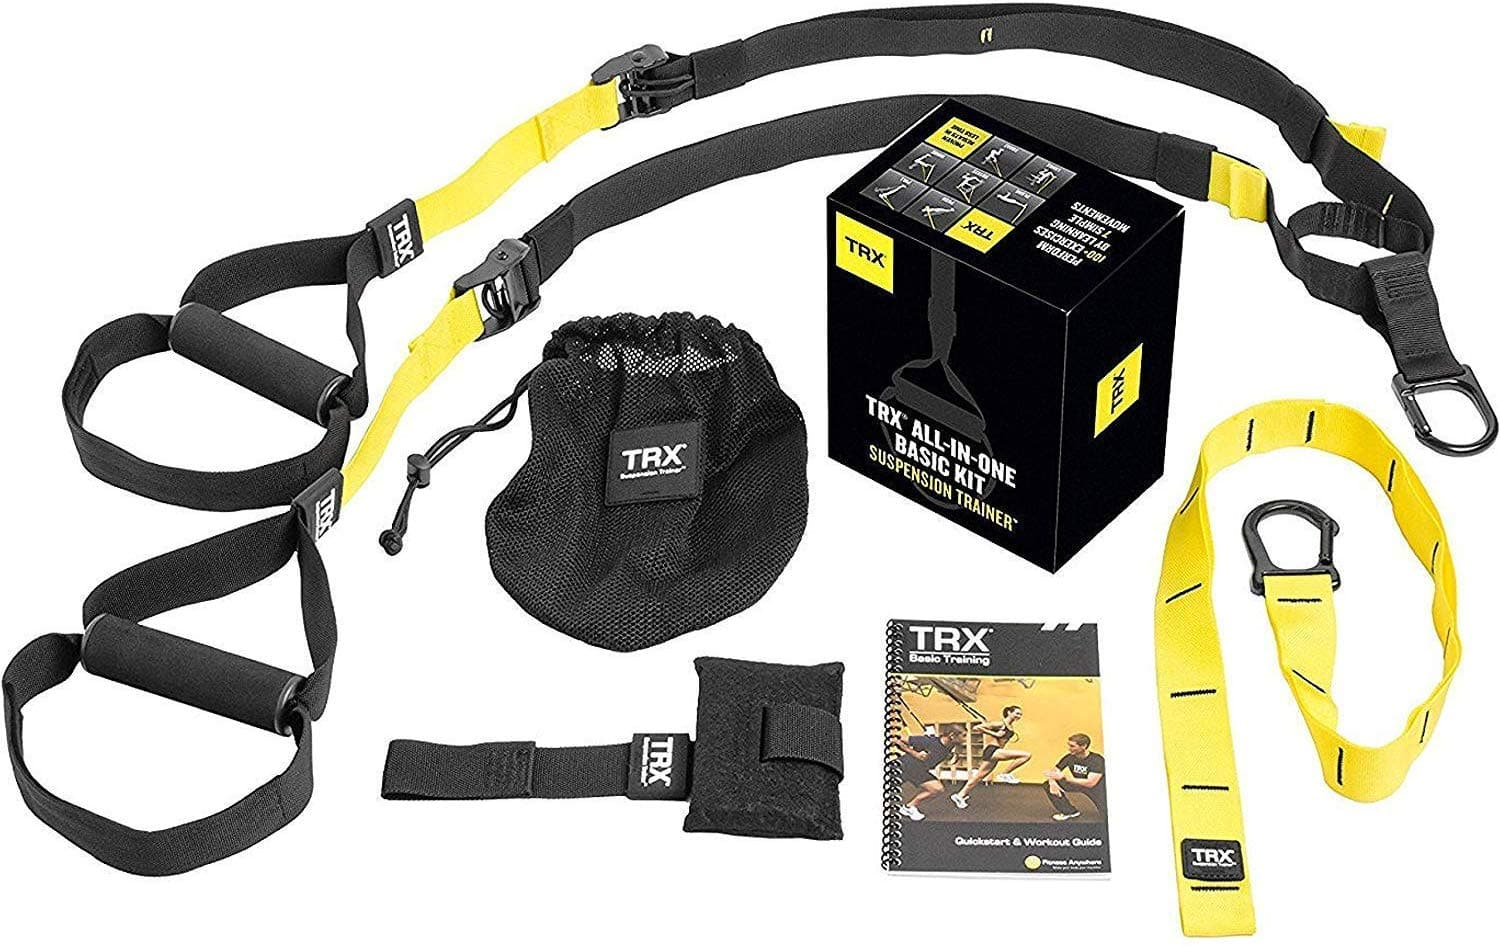 TRX ALL-IN-ONE Suspension Training: Bodyweight Resistance System $94.95 FS w/ Prime